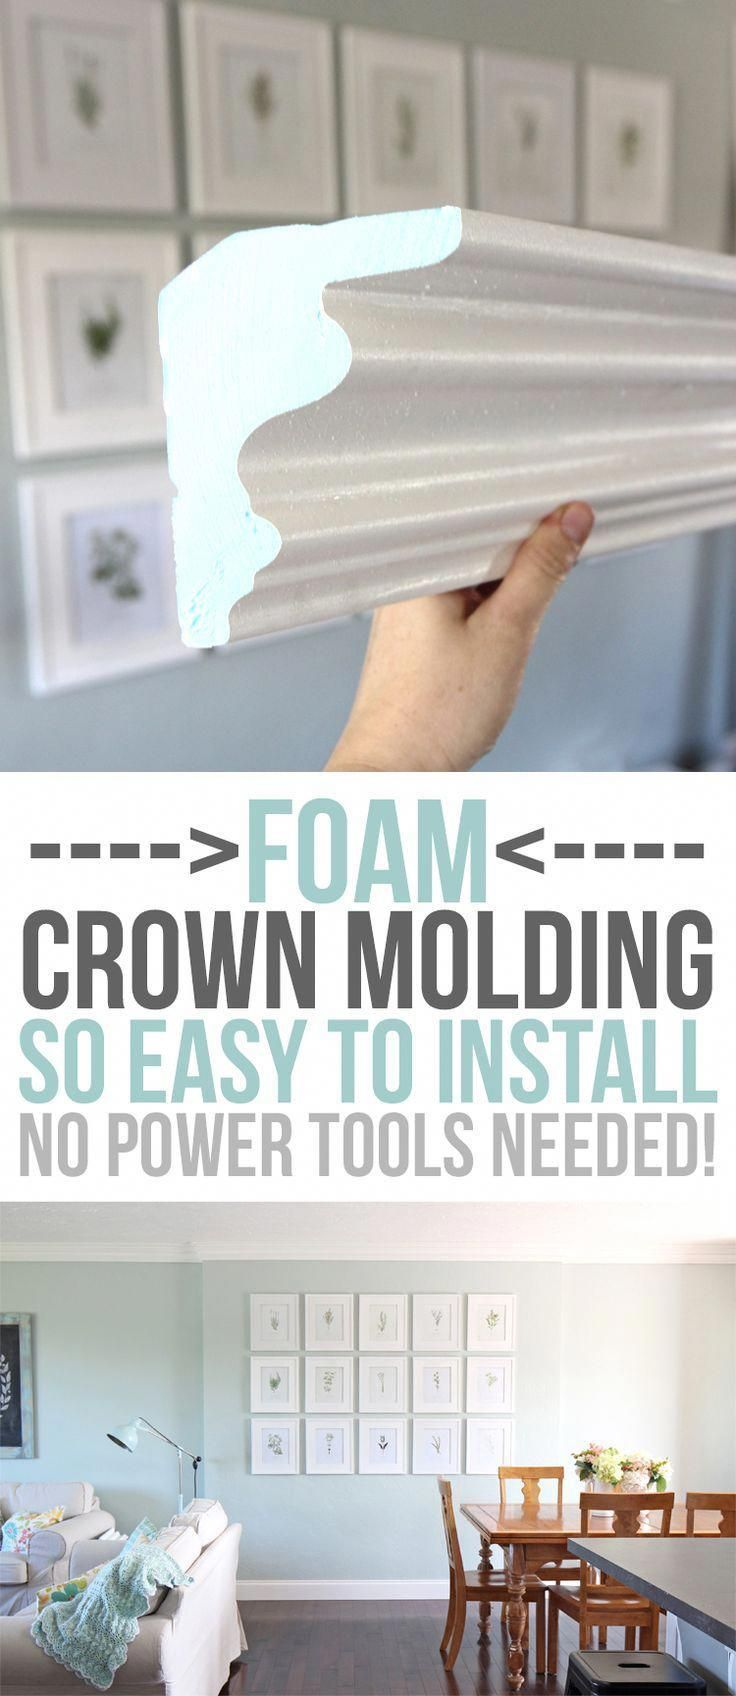 Home Renovation Services Bathroom Home Improvement House Improvement Shows 20190119 Home Remodeling Diy Foam Crown Molding Easy Home Decor